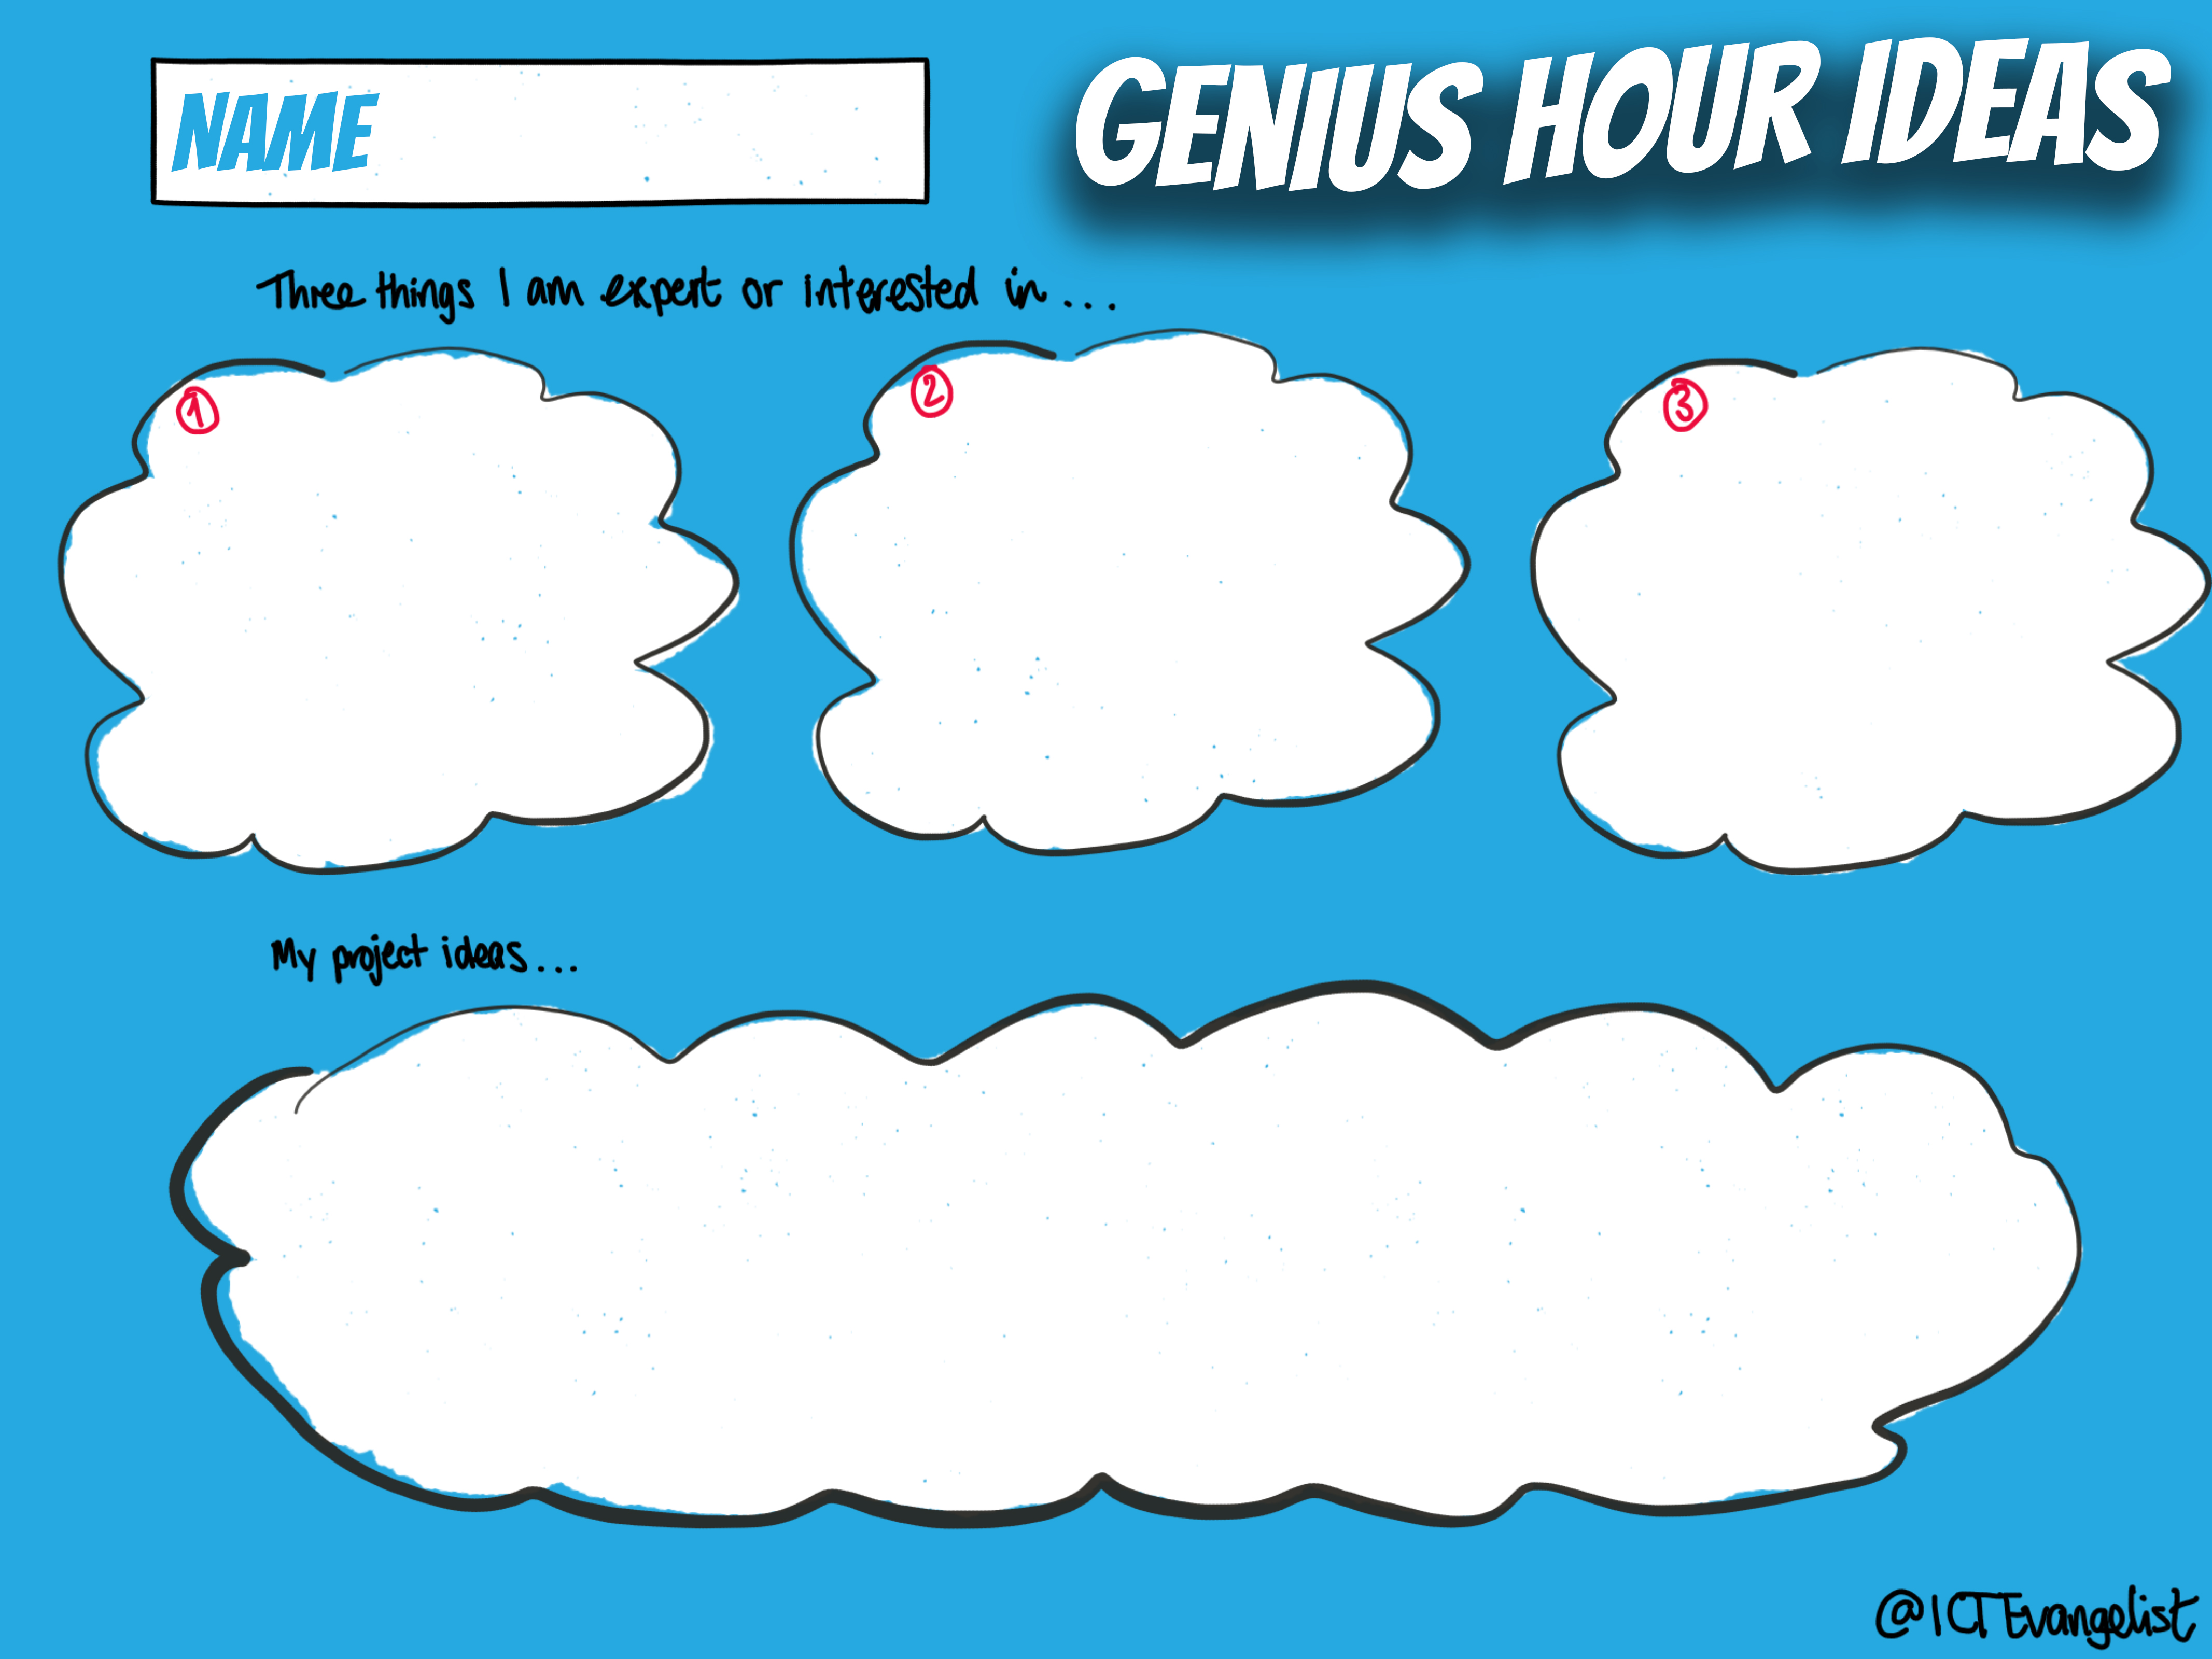 geniuss thinking A genius is a person who displays exceptional intellectual ability, creative  productivity,  besides the traits that galton thought necessary for eminence ( viz, high ability, zeal, and persistence), genius implies outstanding creativity as  well.